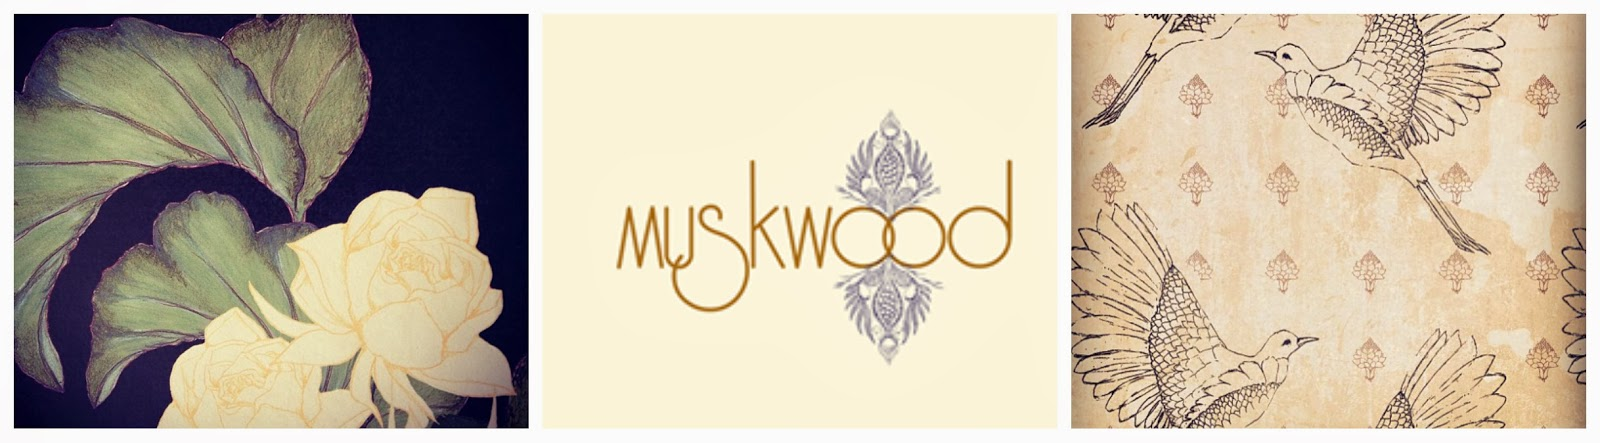 Muskwood Wallpaper and Textiles